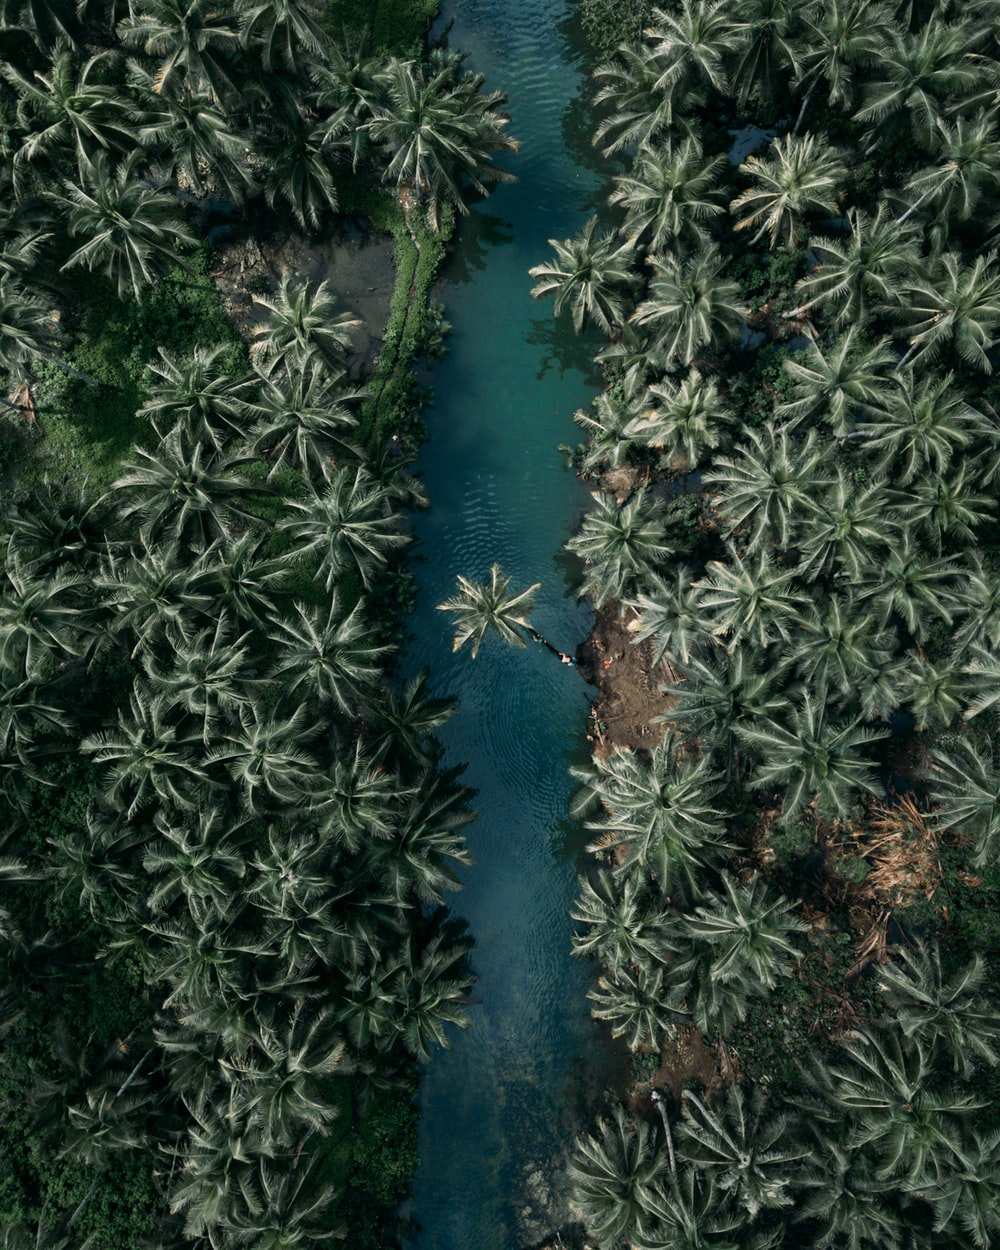 top view of palm trees